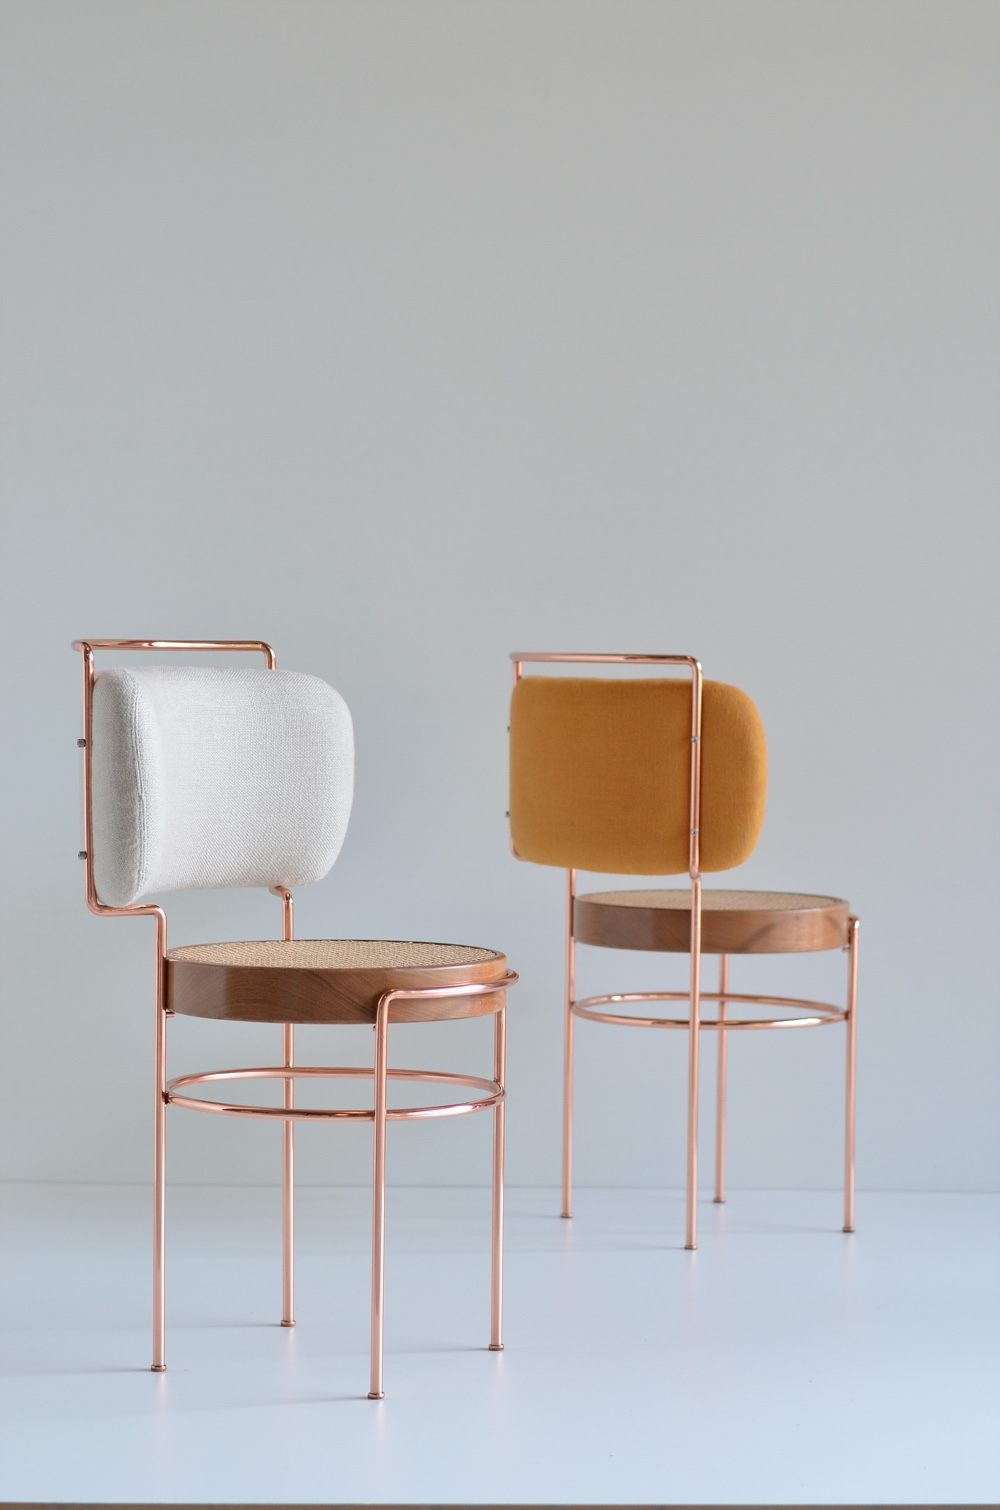 Cadeira IAIÁ by Gustavo Bittencourt draws inspiration from Brazilian modernism. Appearing feminine in shape, the chair is made using copper, solid wood, straw (for the seat) and fabric (for the backrest).